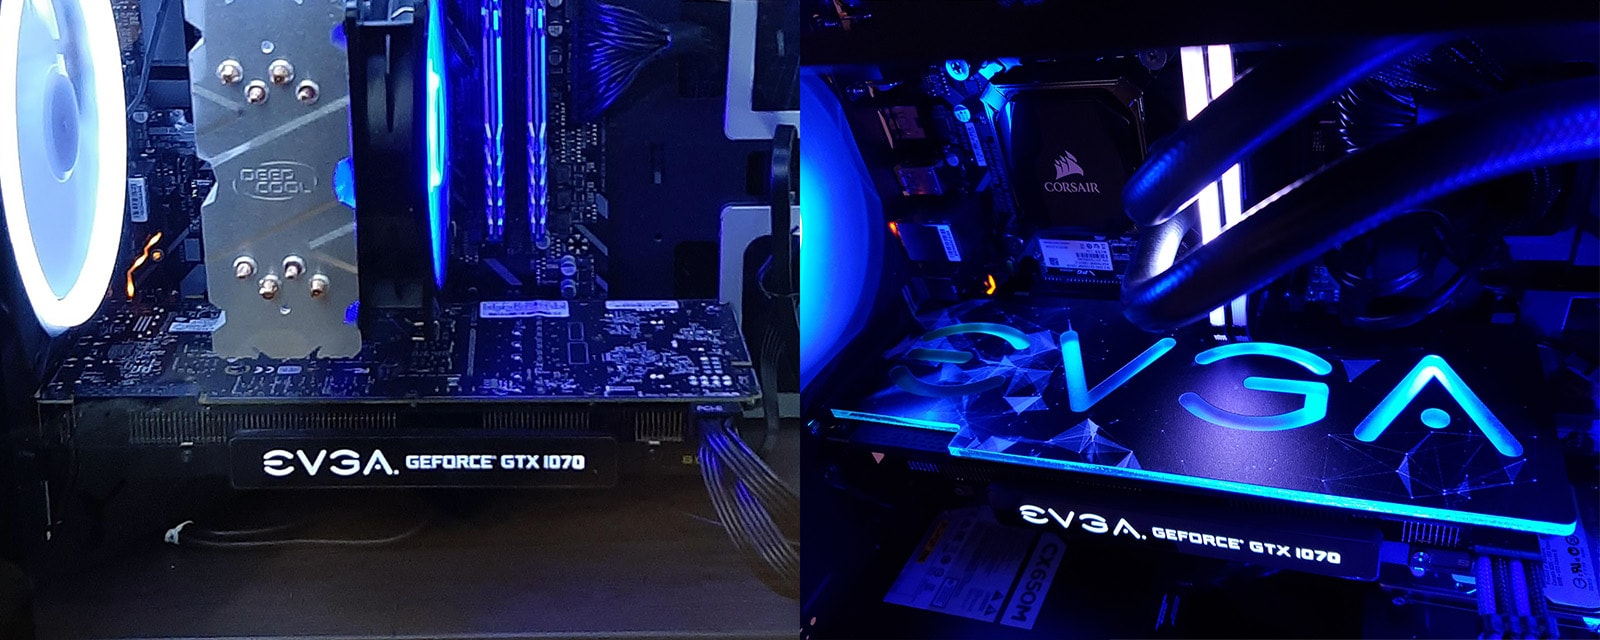 GPU backplate shown with and without